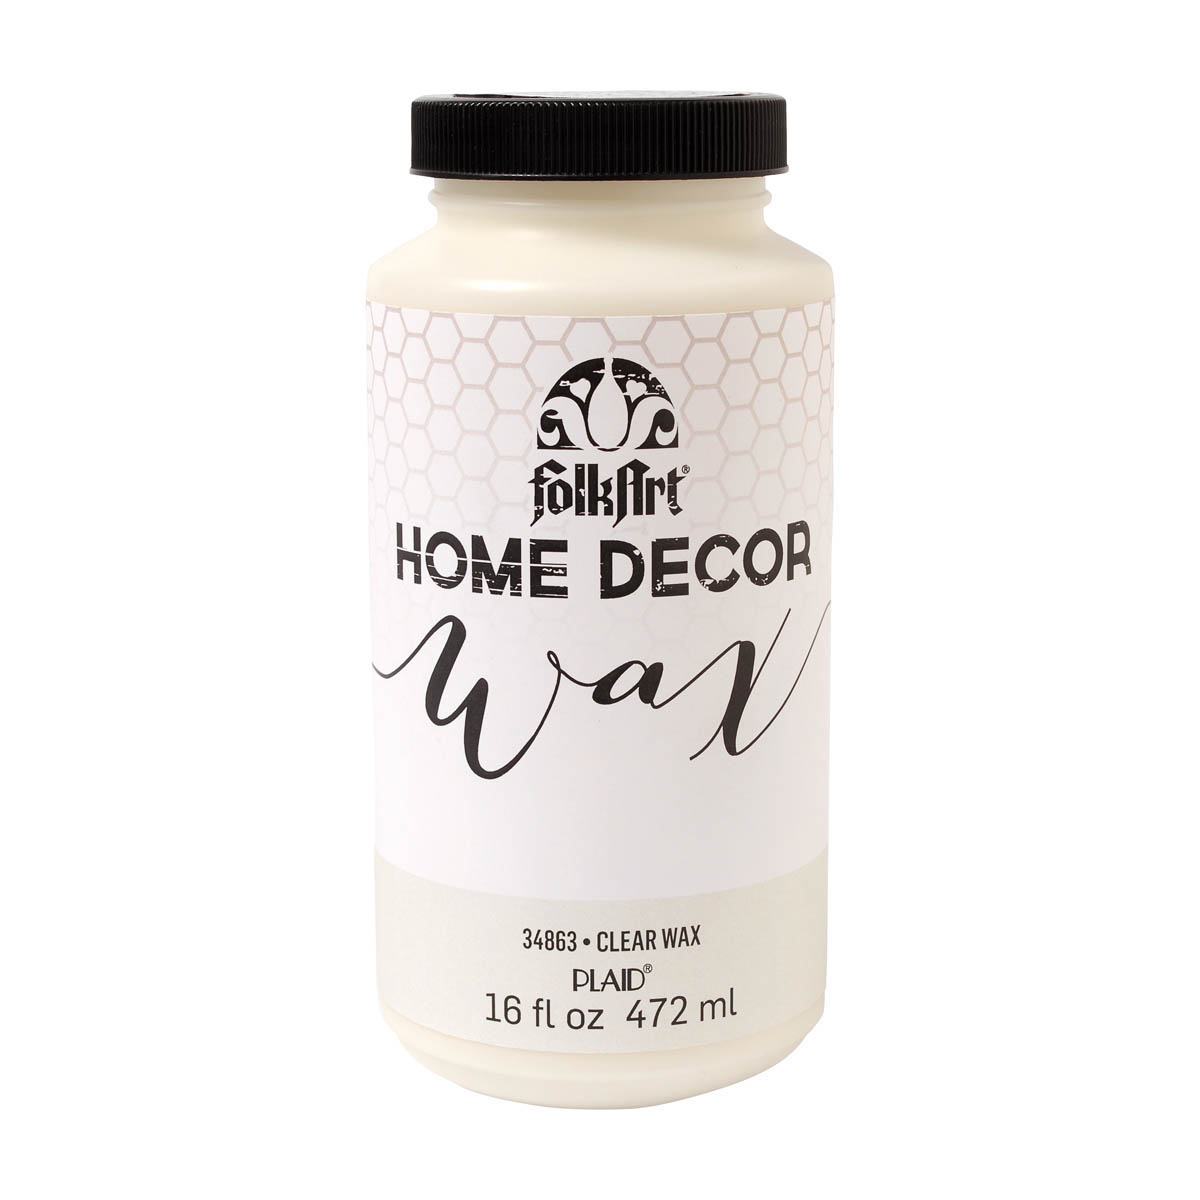 FolkArt ® Home Decor™ Wax - Clear, 16 oz. - 34863